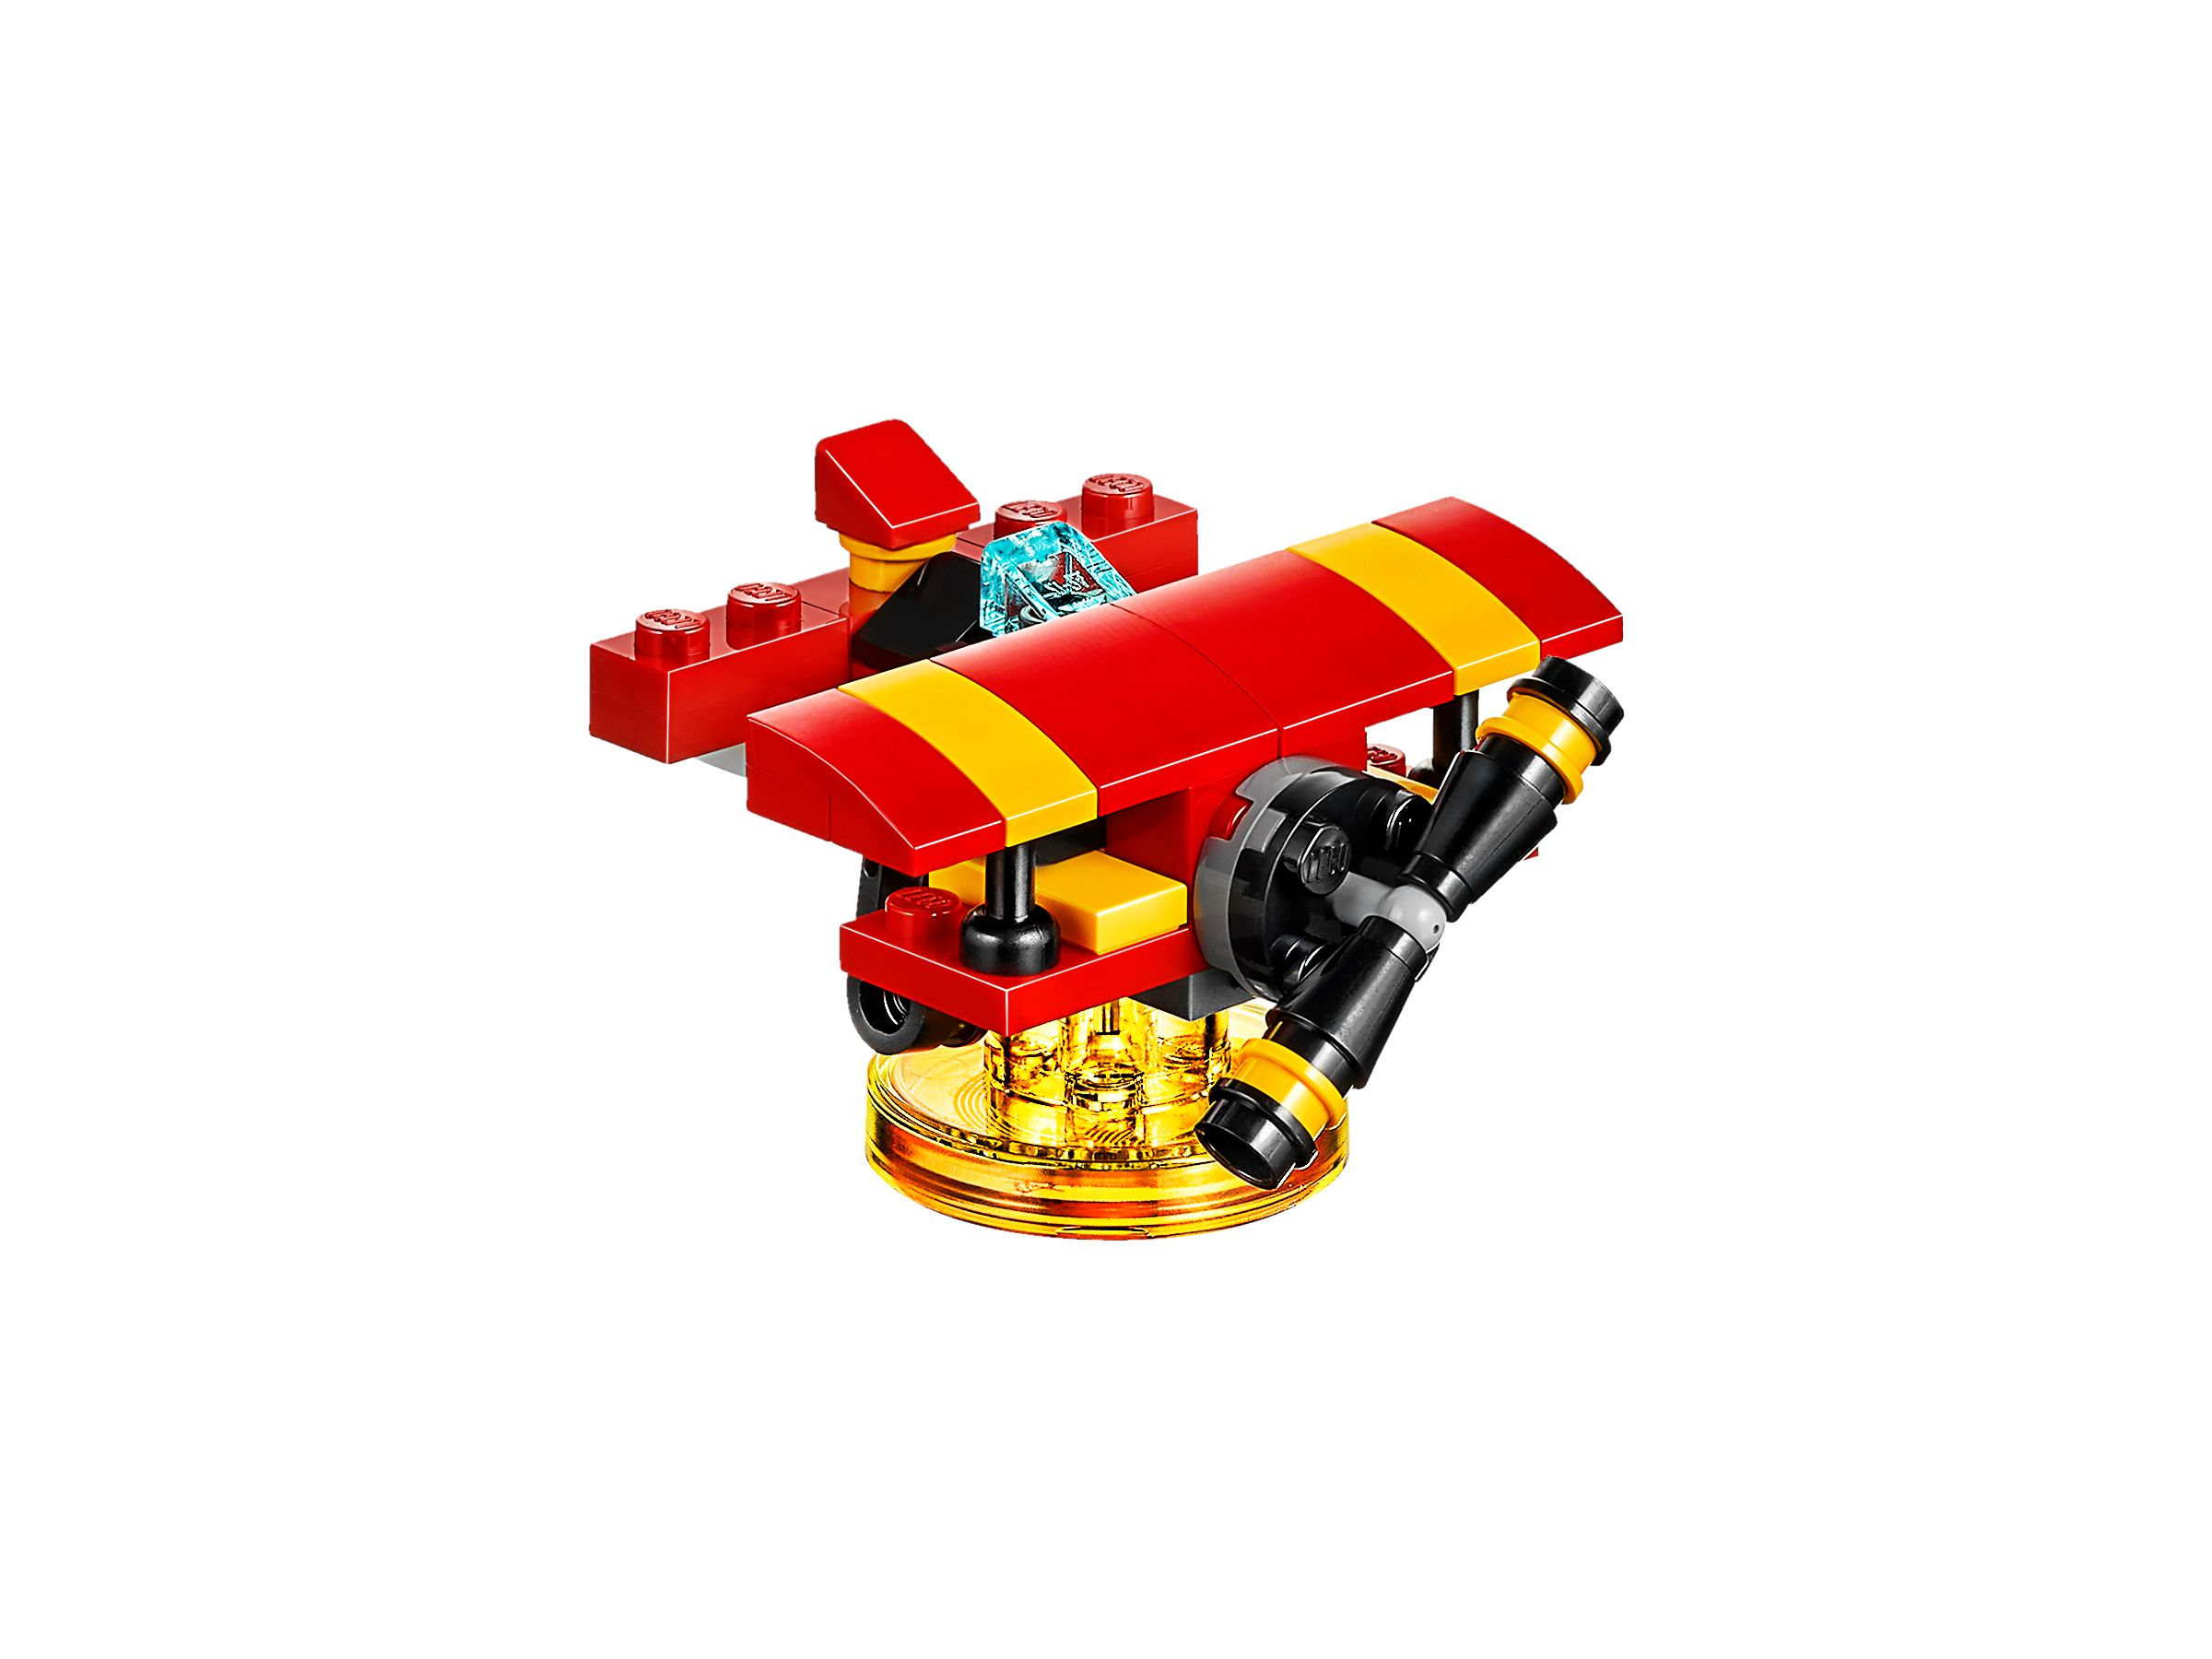 LEGO Dimensions 71244 Level Pack Sonic the Hedgehog LEGO_71244_alt6.jpg